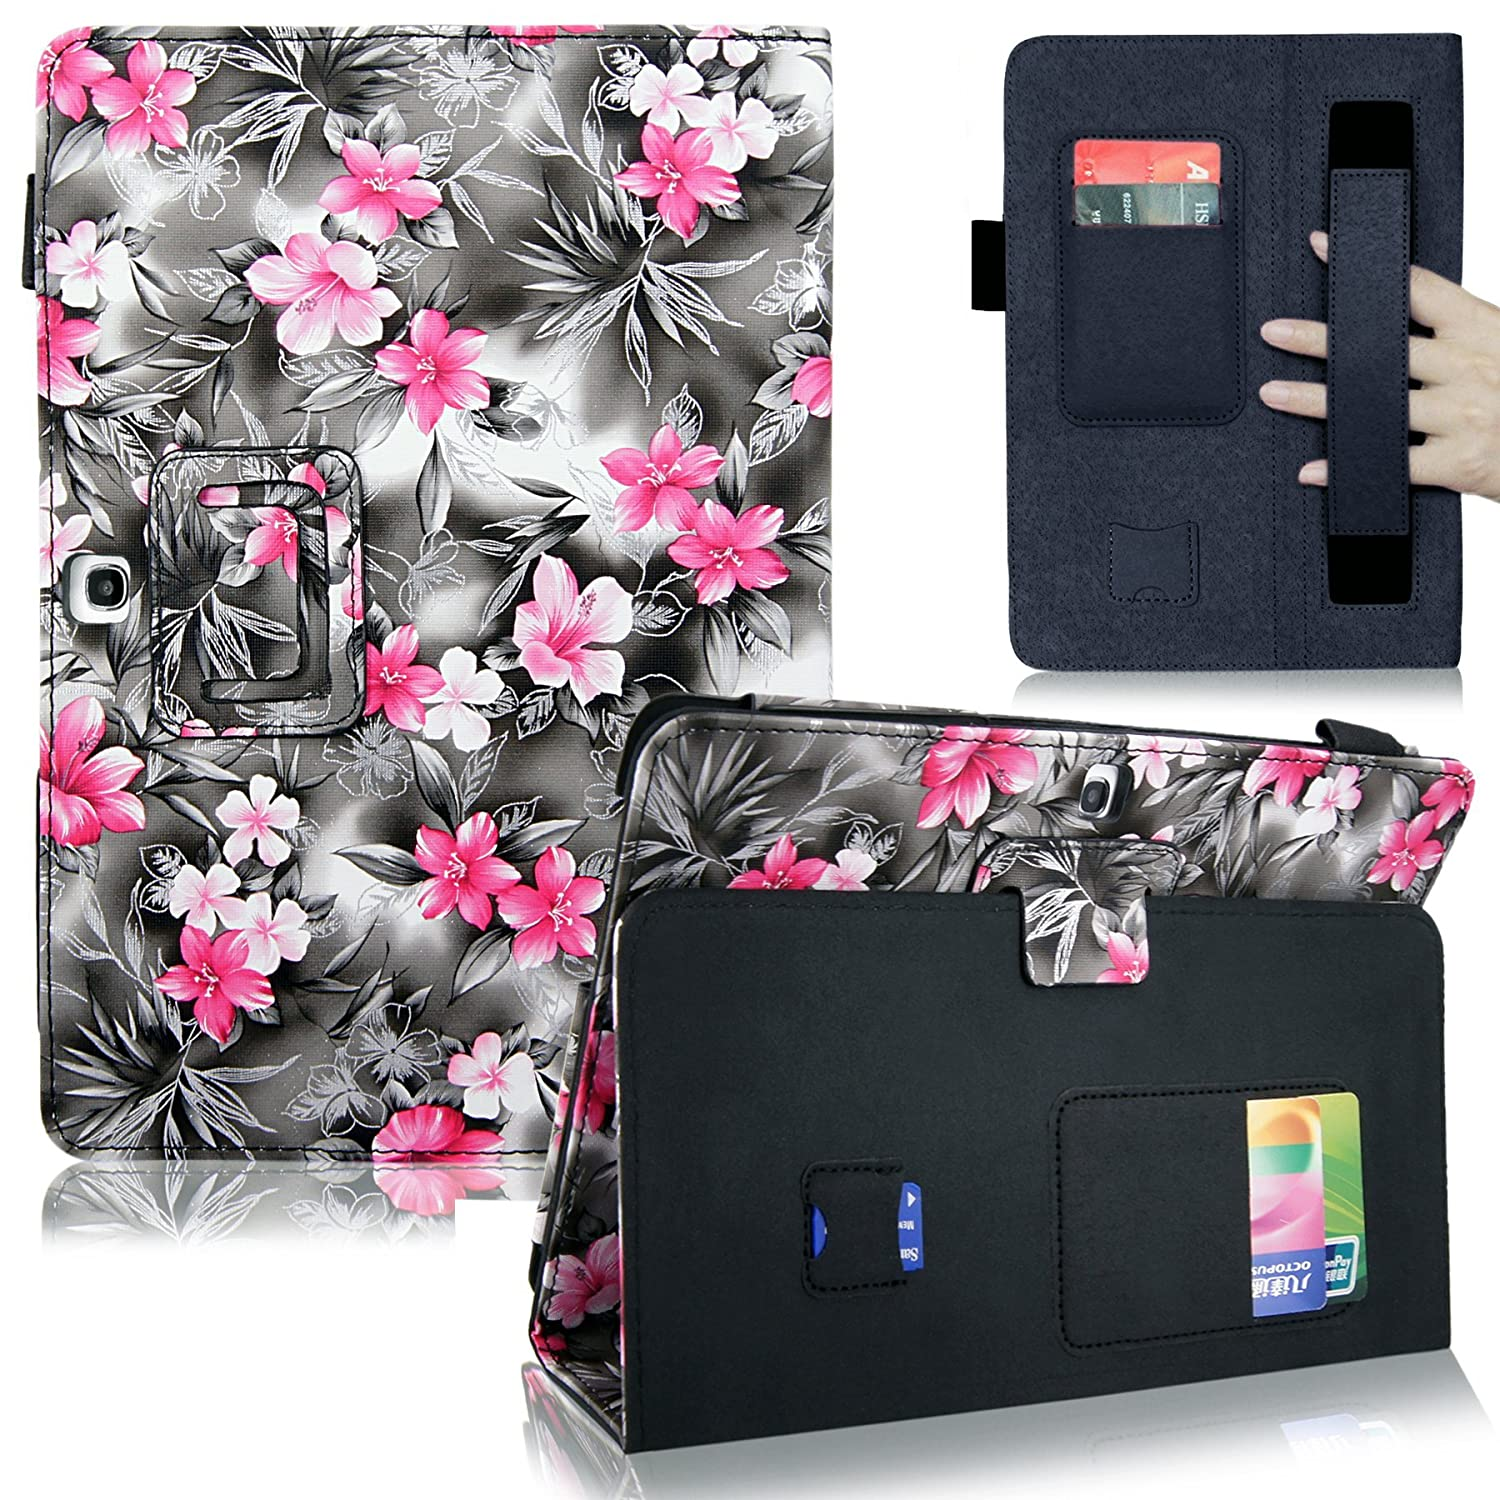 Cellularvilla Case for Samsung Galaxy tab 3 7 8 Gen Pu Leather Elastic Hand Strap Flip Folio Stand Case Cover + Stylus Touch Pen g cover pu leather hand bag for ipad 2 3 4 samsung galaxy tab p5100 10 table pc blue